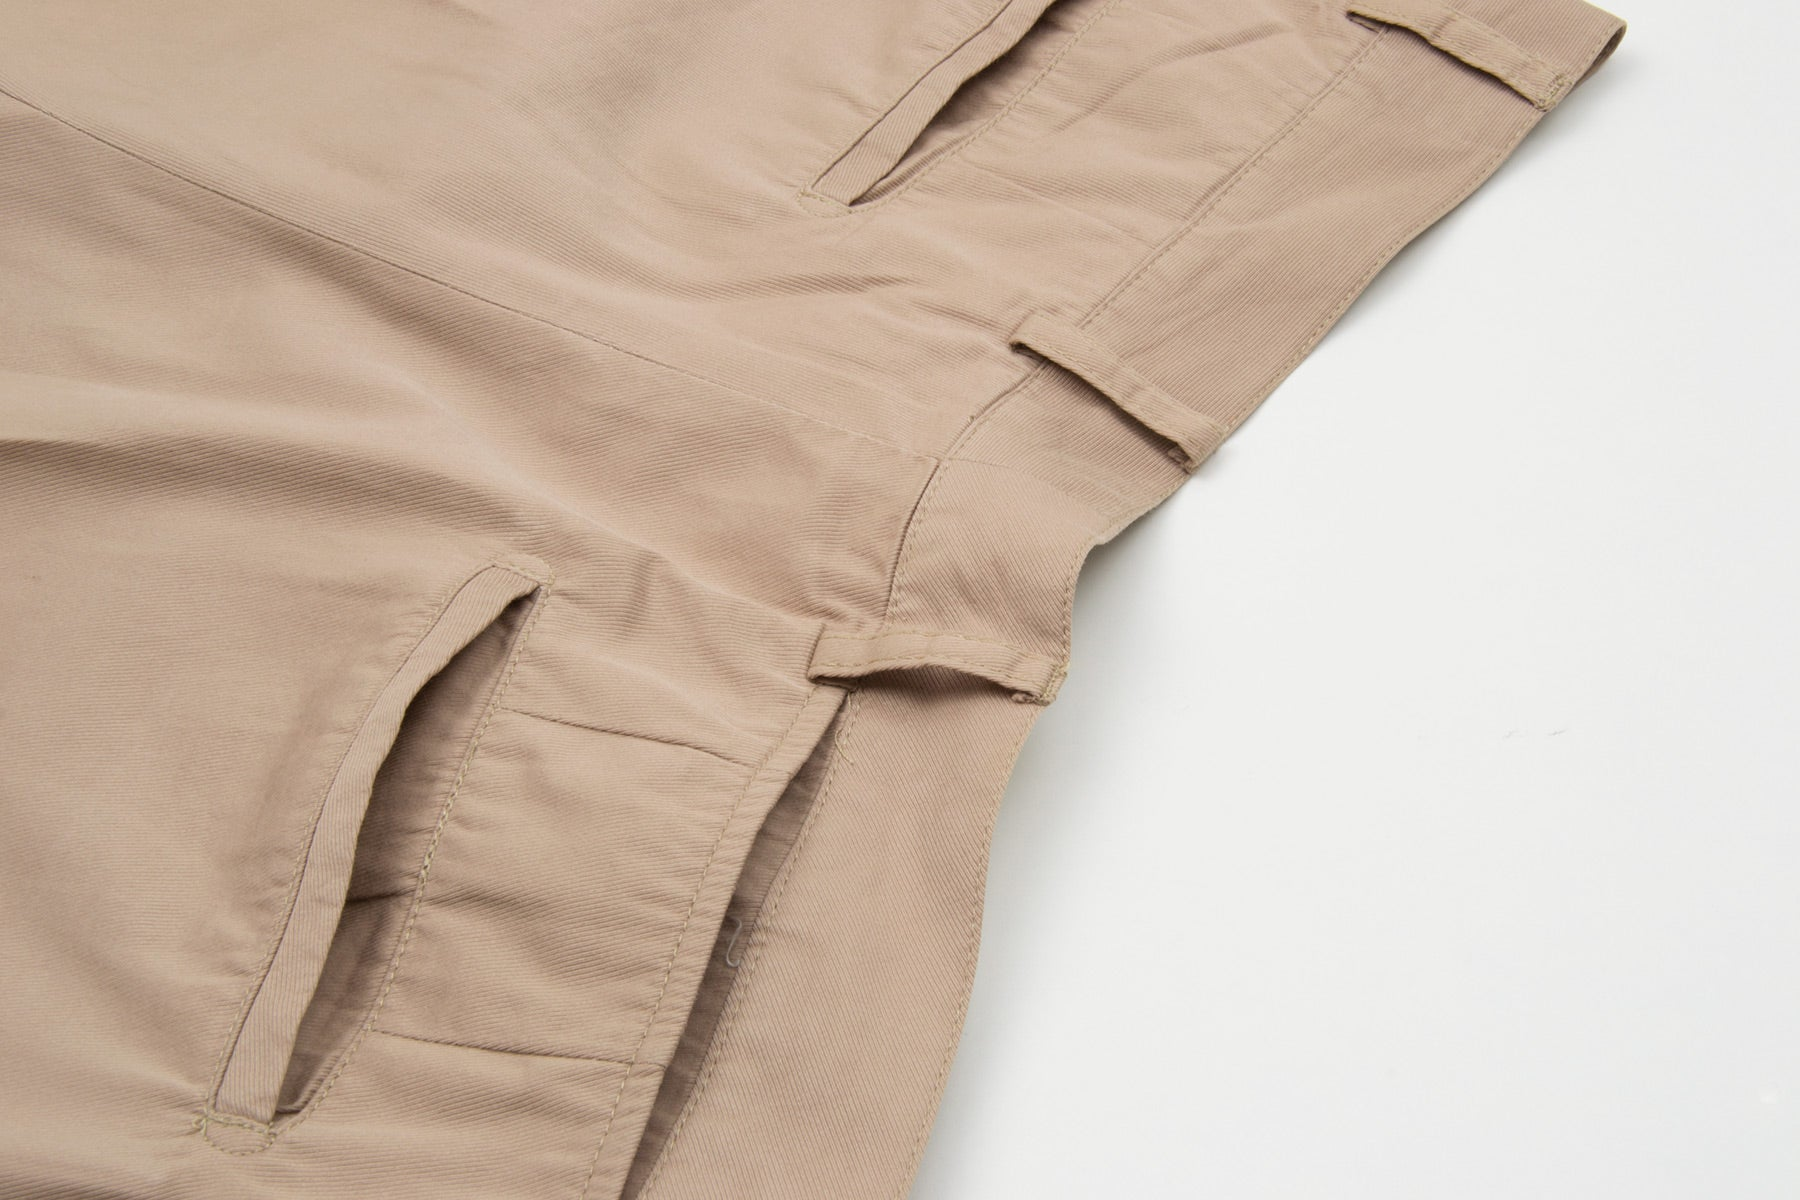 2003 S/S ANATOMICAL PANTS IN A TWILL COTTON